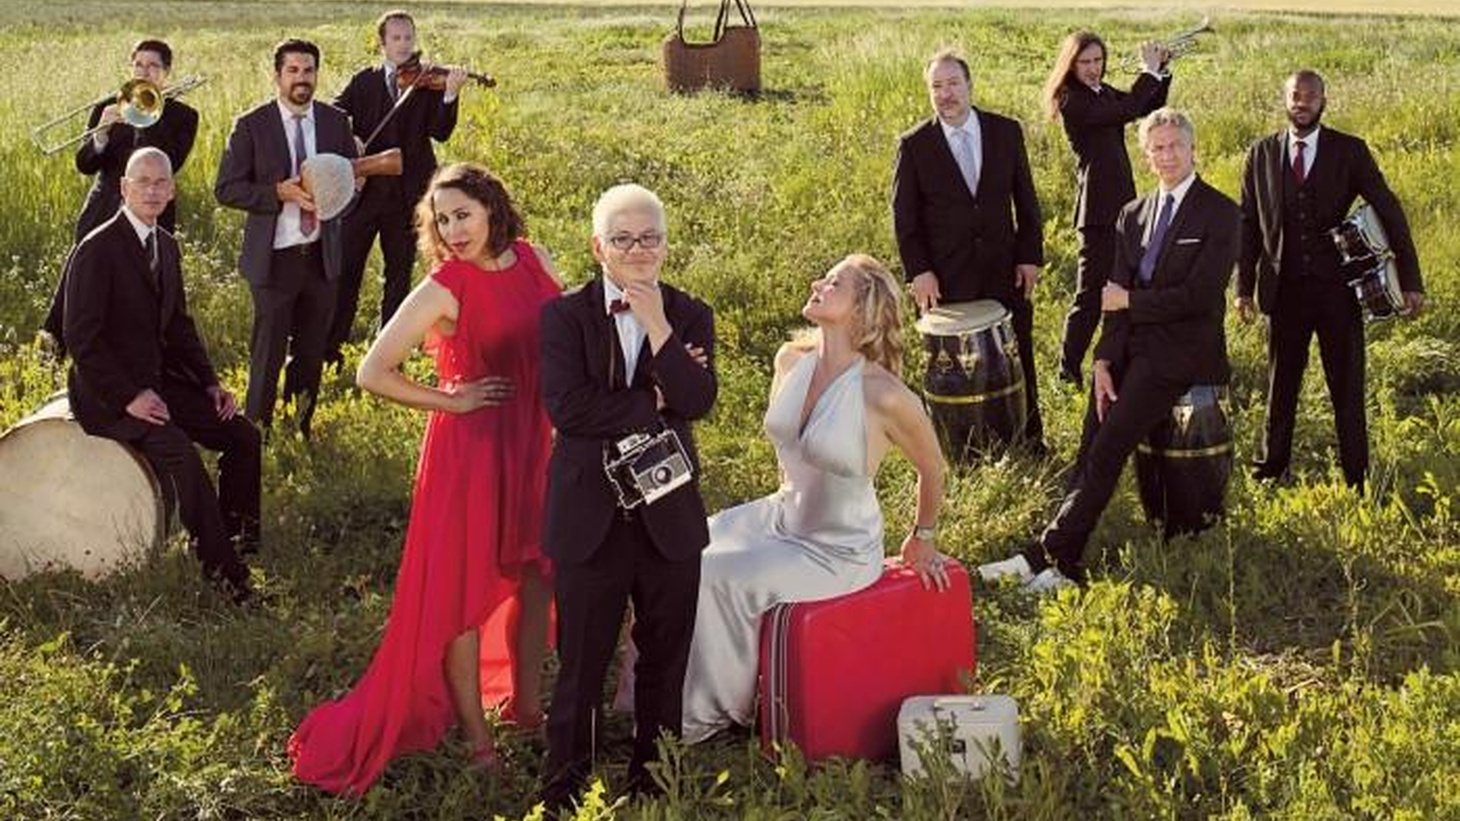 Pink Martini is a little orchestra with international acclaim. They traverse the world in song delighting audiences with originals and classics likeToday's Top Tune.